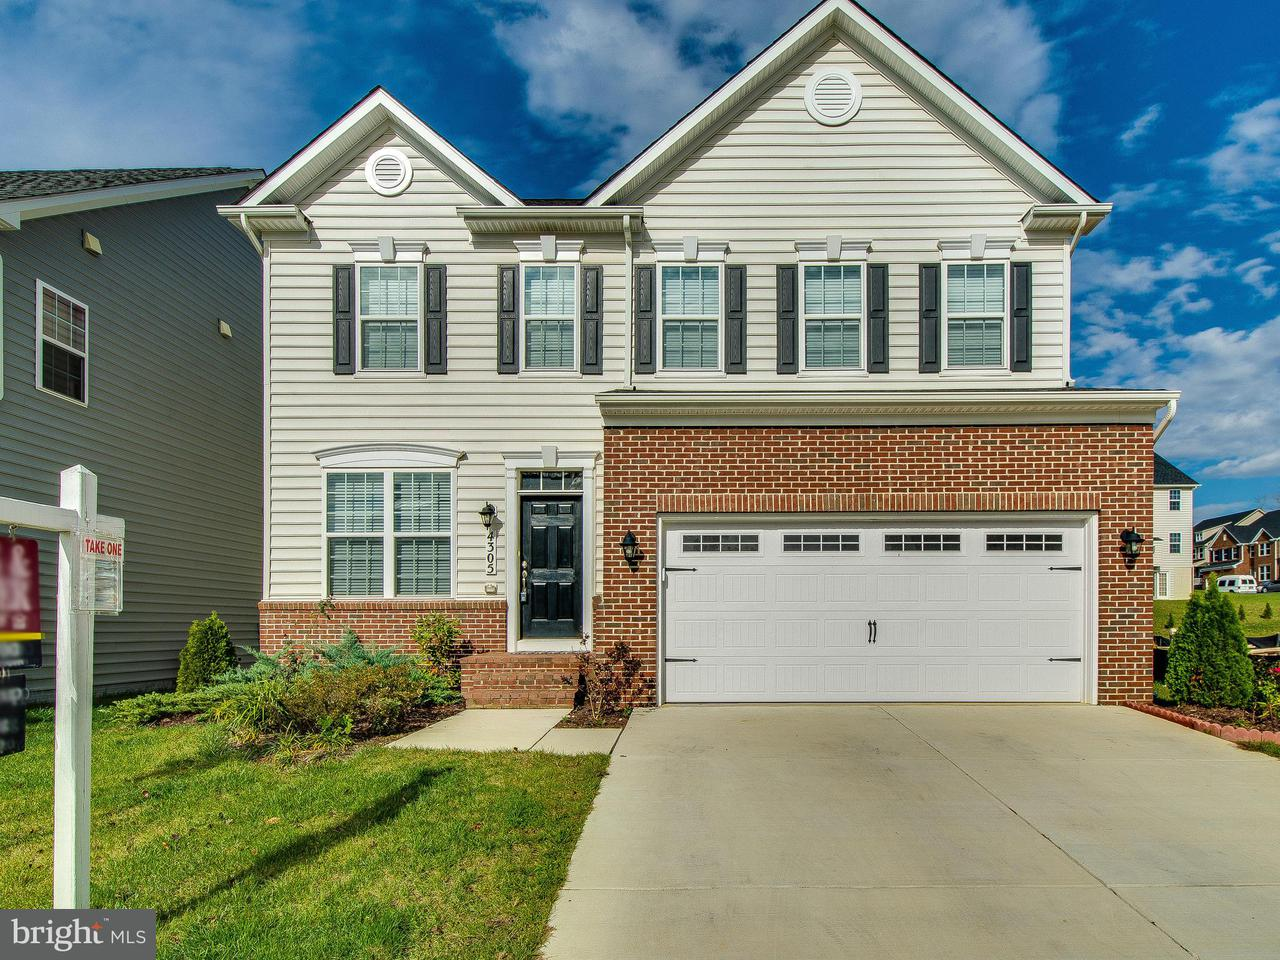 Single Family Home for Sale at 4305 CAMLEY WAY 4305 CAMLEY WAY Burtonsville, Maryland 20866 United States